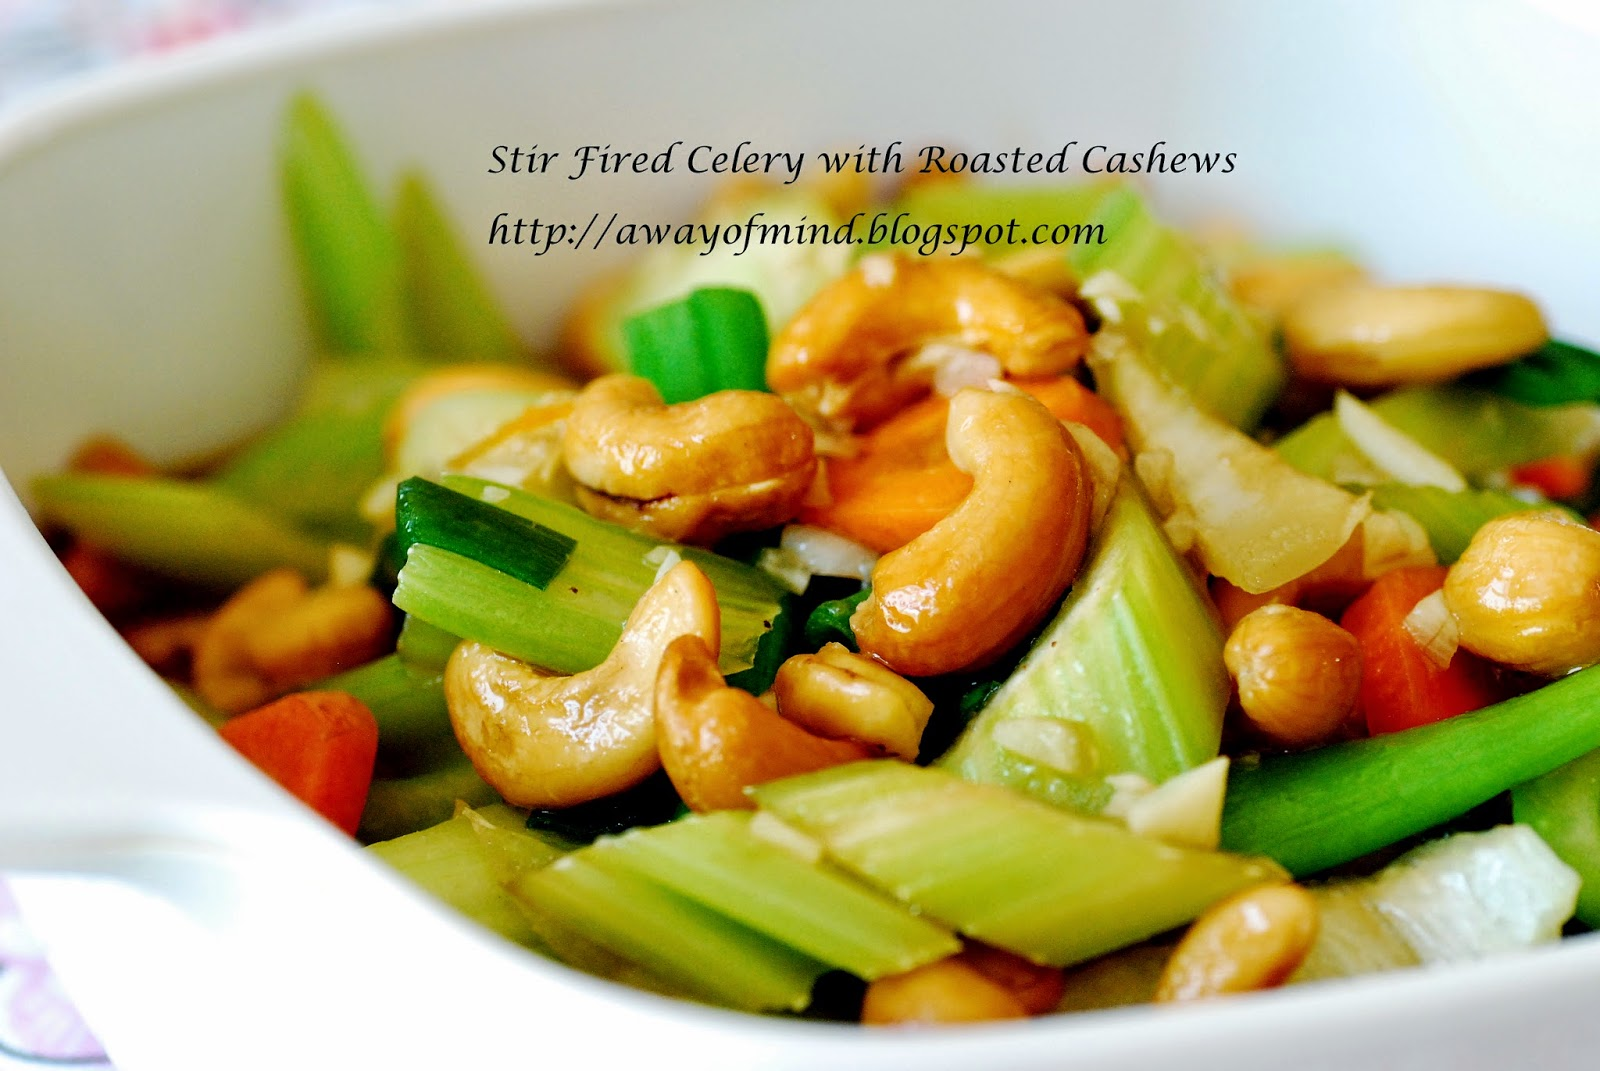 Awayofmind Bakery House: Stir Fried Celery with Roasted Cashews